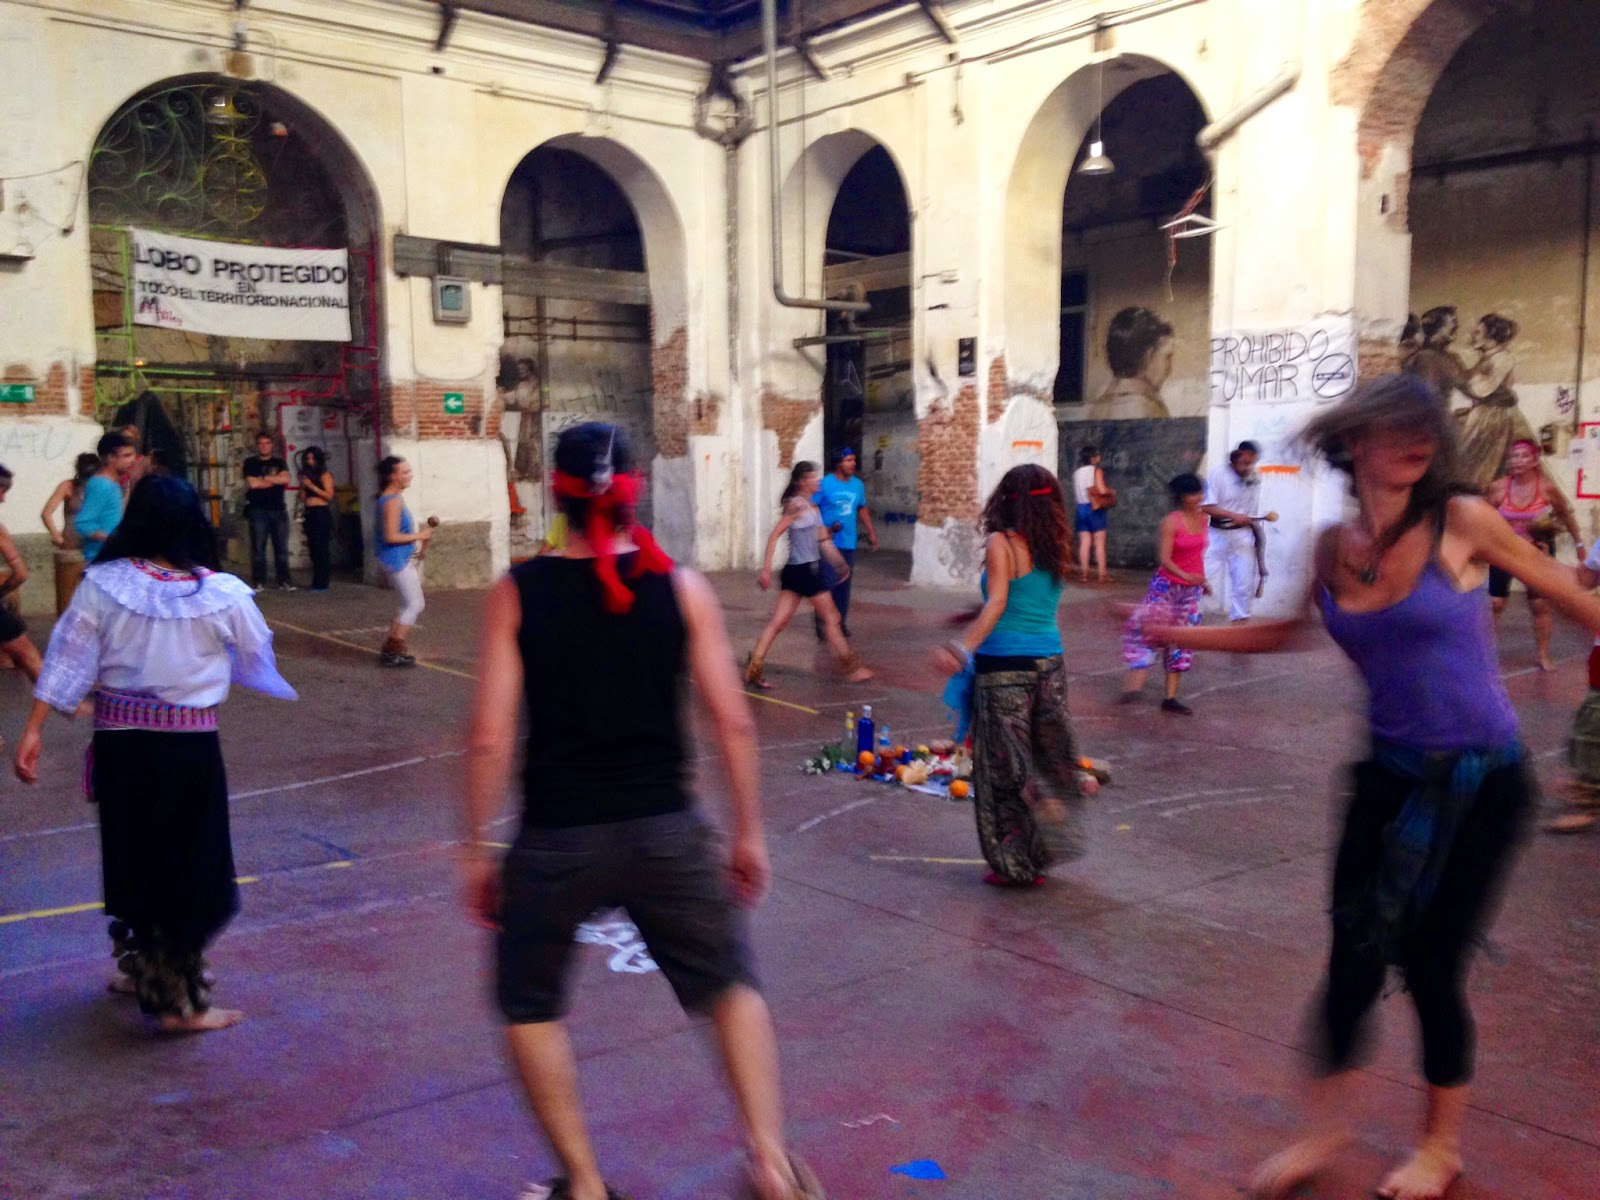 Dancing activities inside La Tabacalera